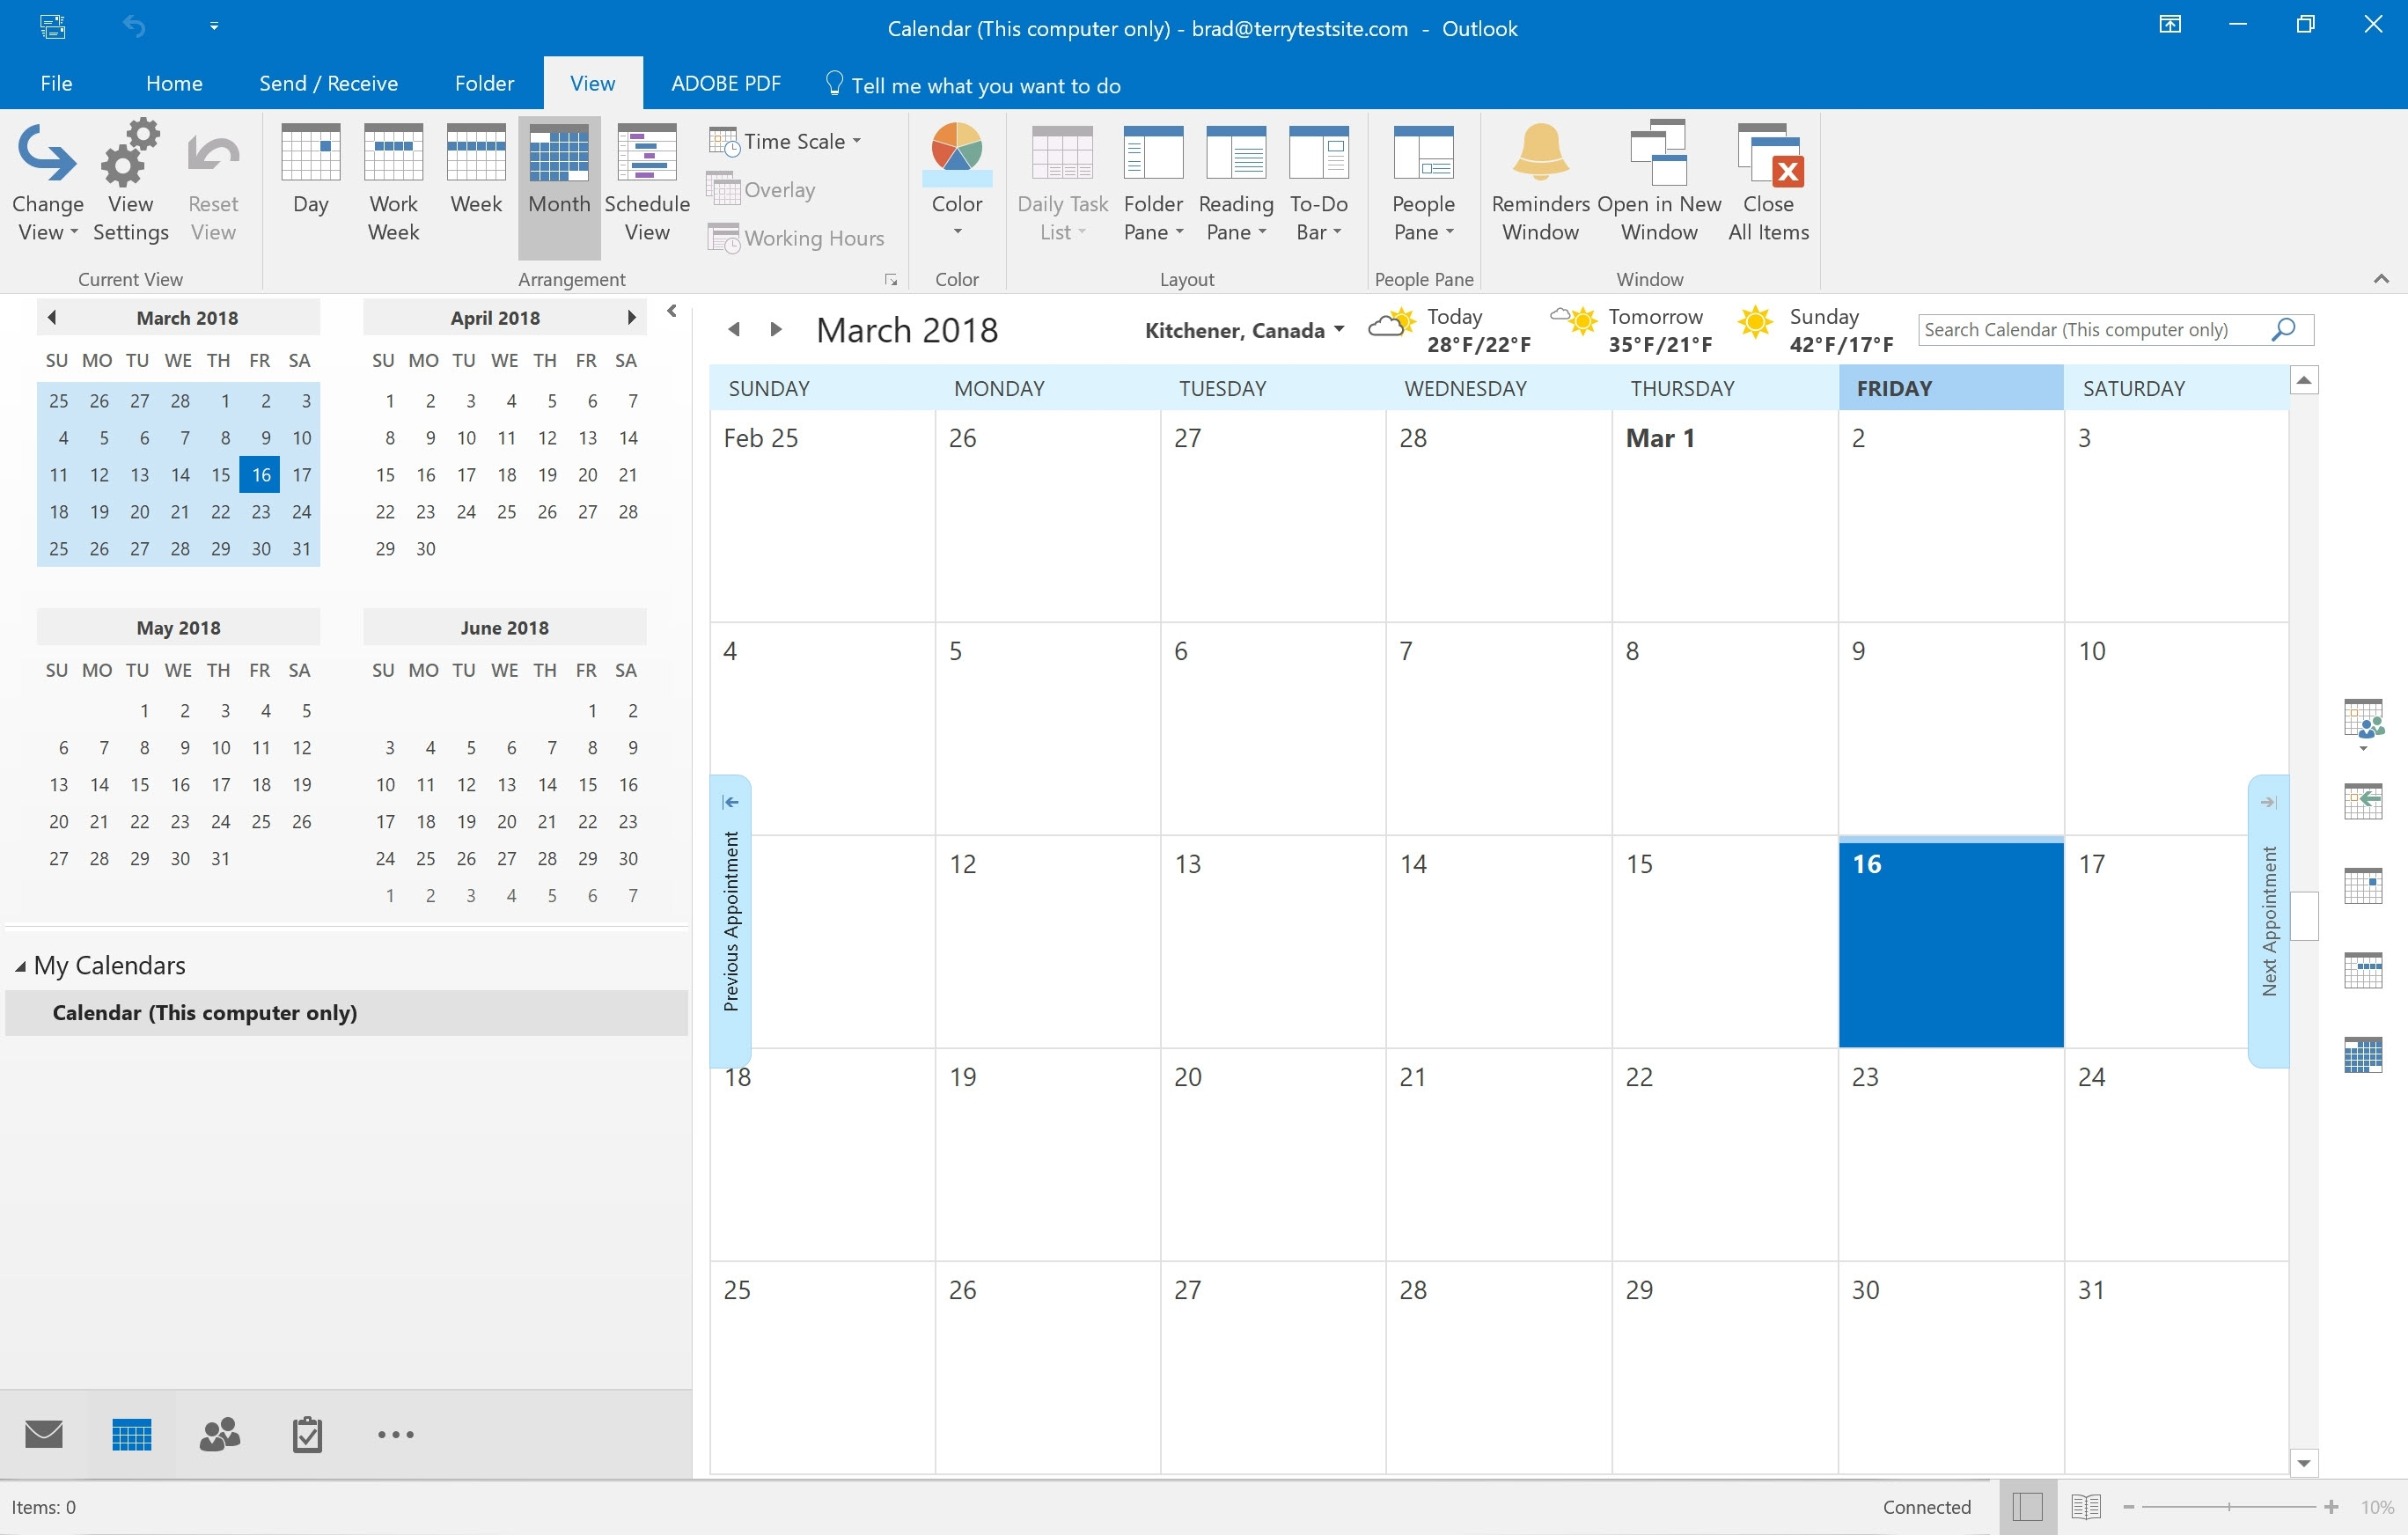 How To View And Customise Calendars In Outlook 2016